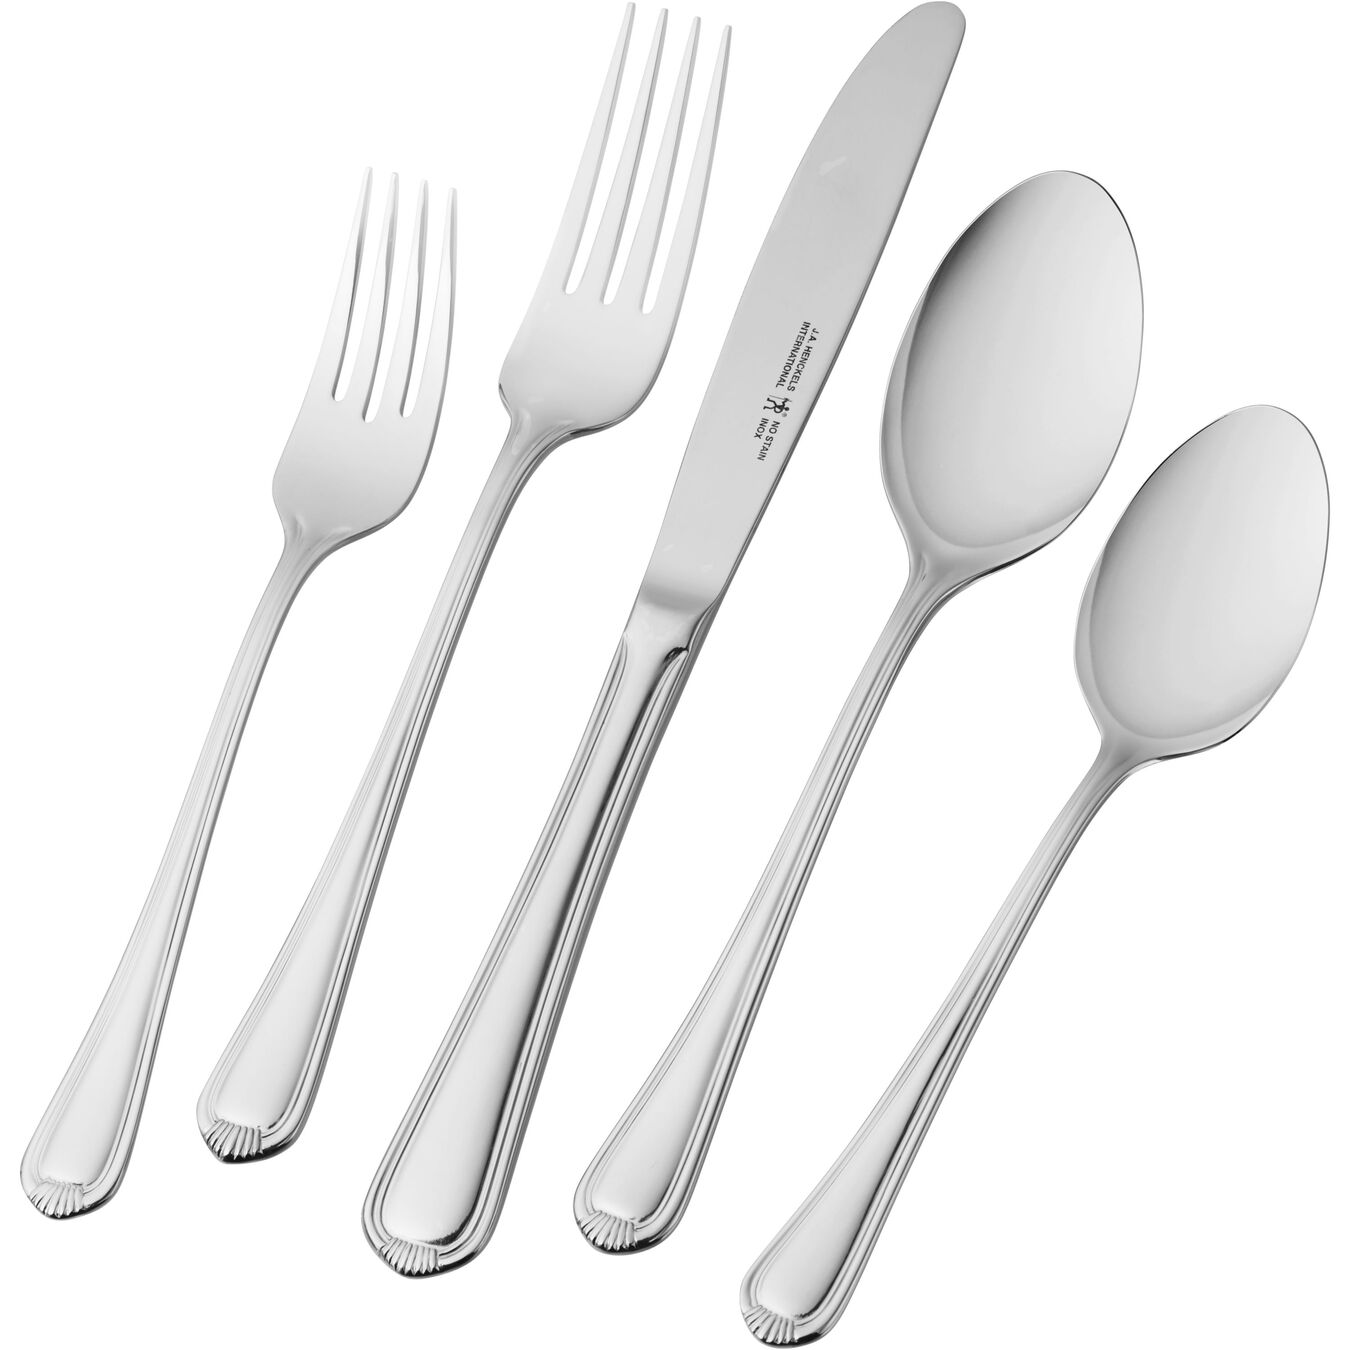 65-pc 18/10 Stainless Steel Flatware Set,,large 1